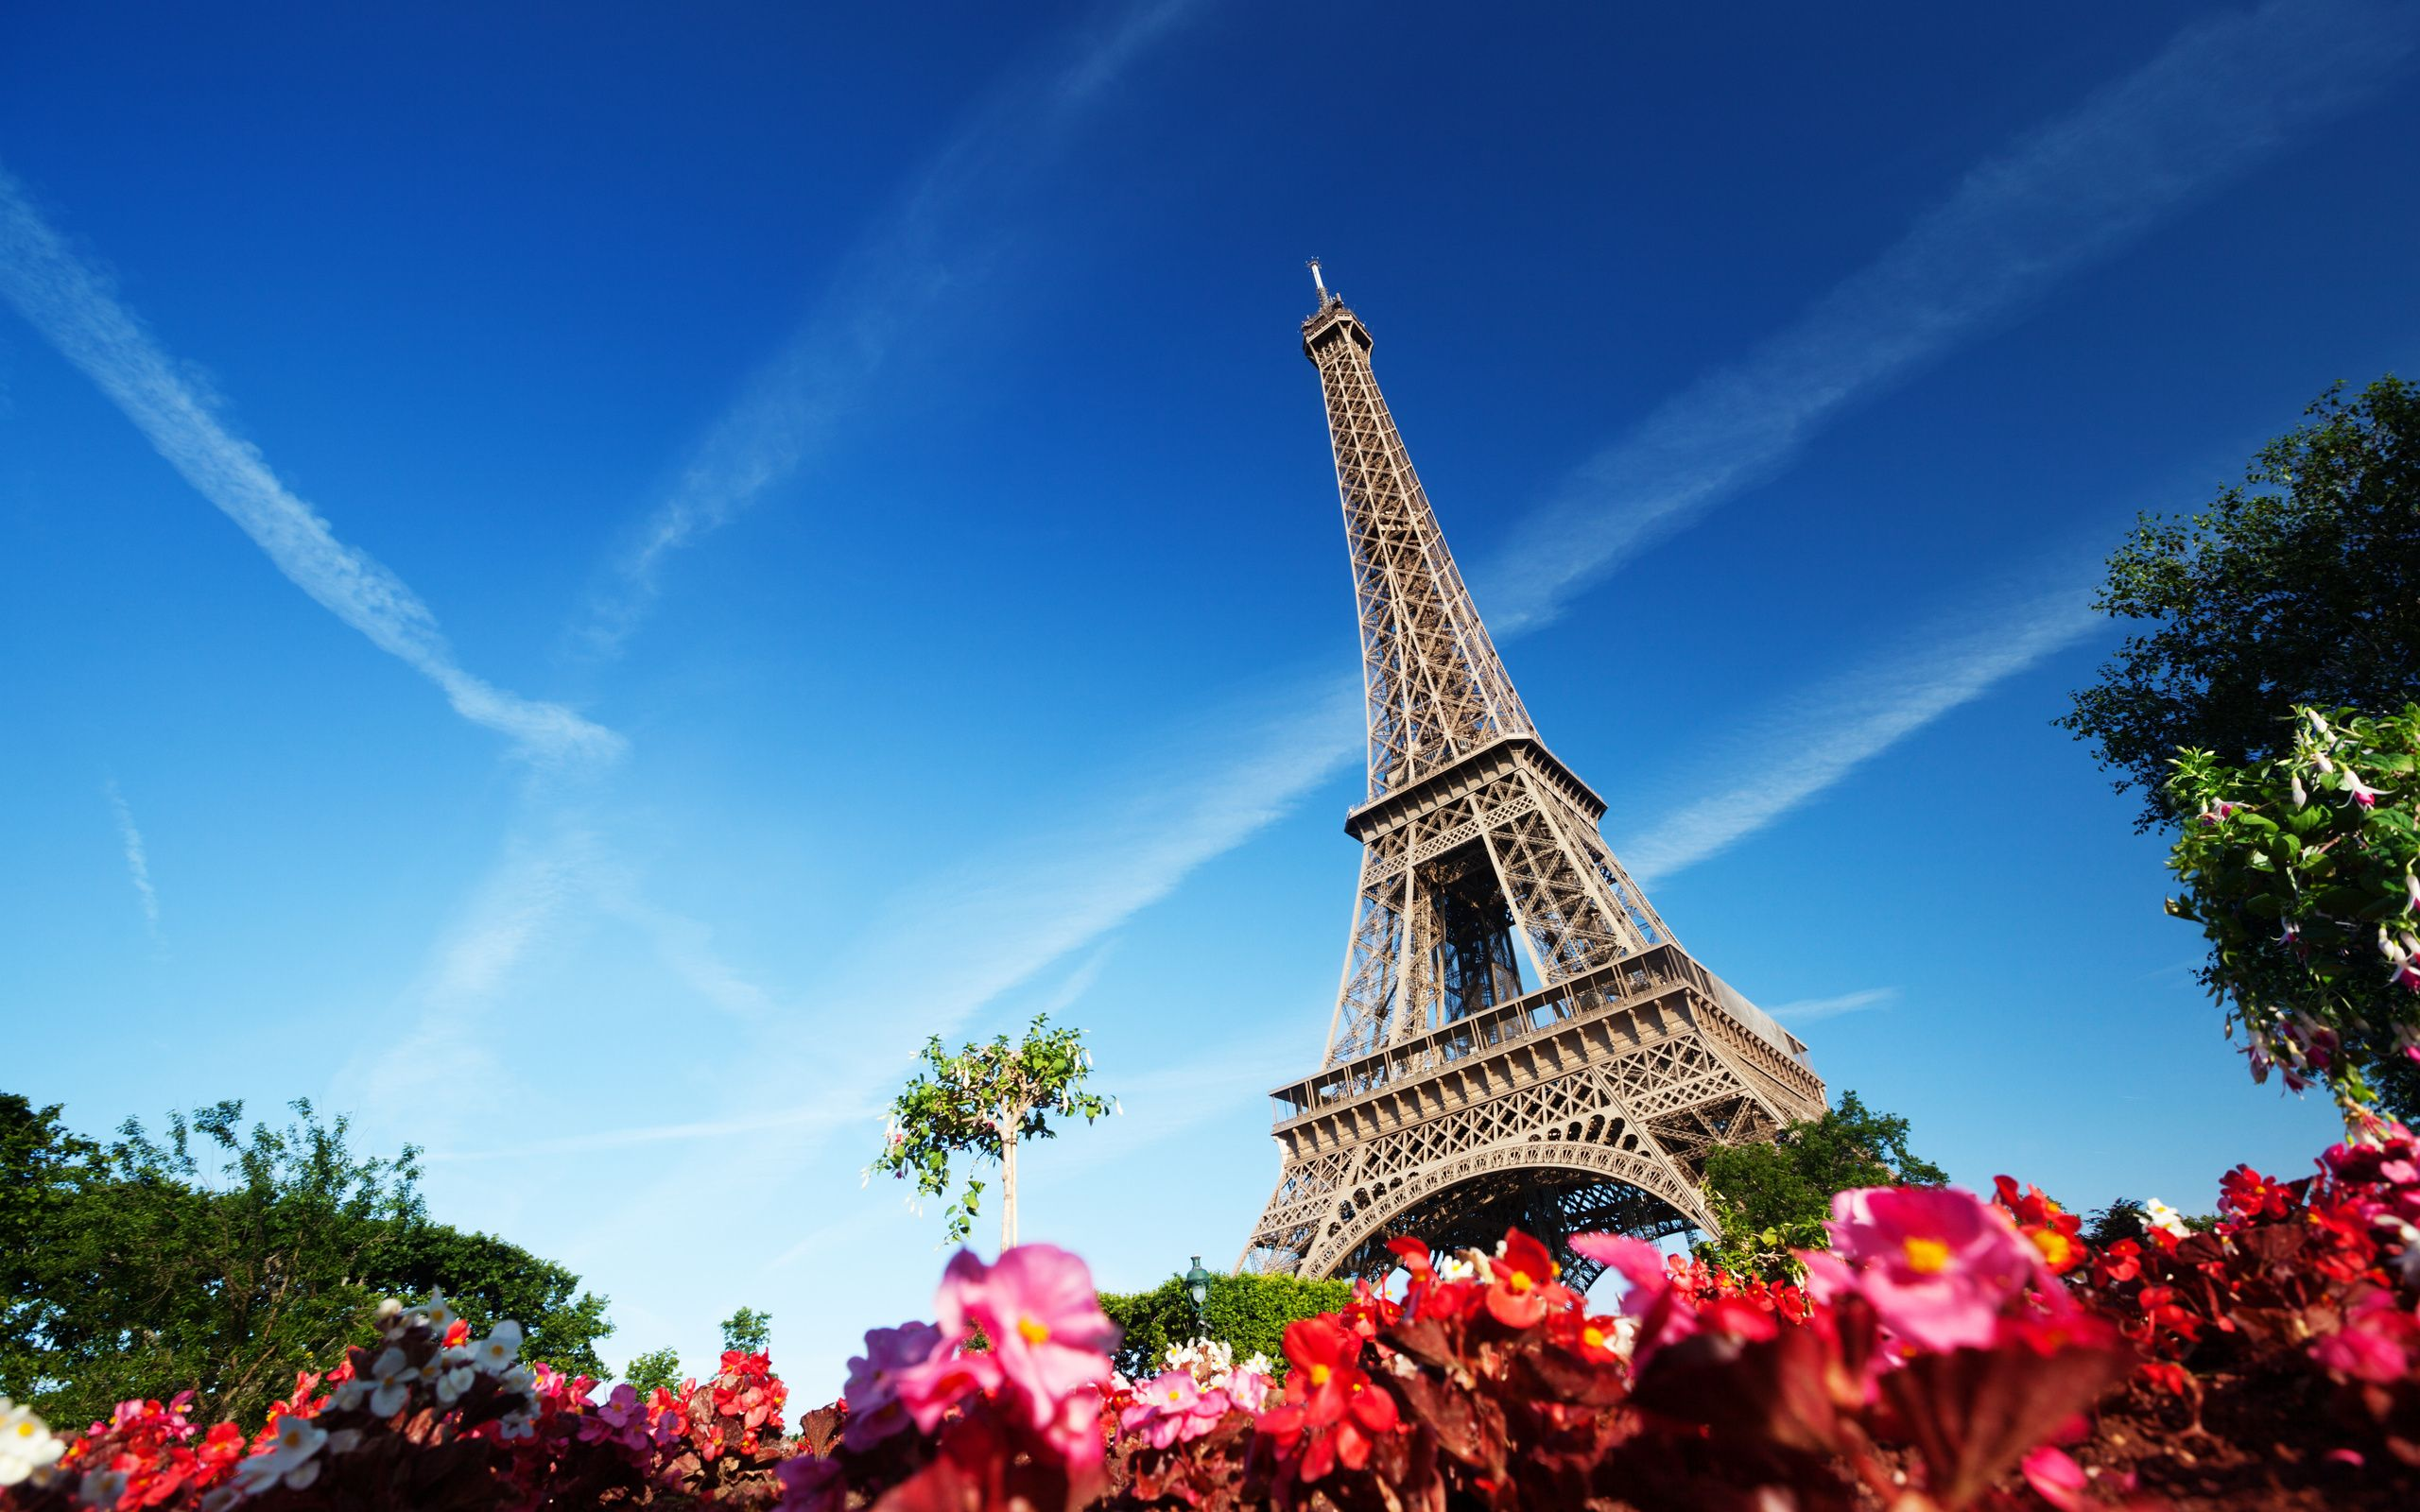 Eiffel tower wallpaper find best latest eiffel tower - Paris eiffel tower desktop wallpaper ...